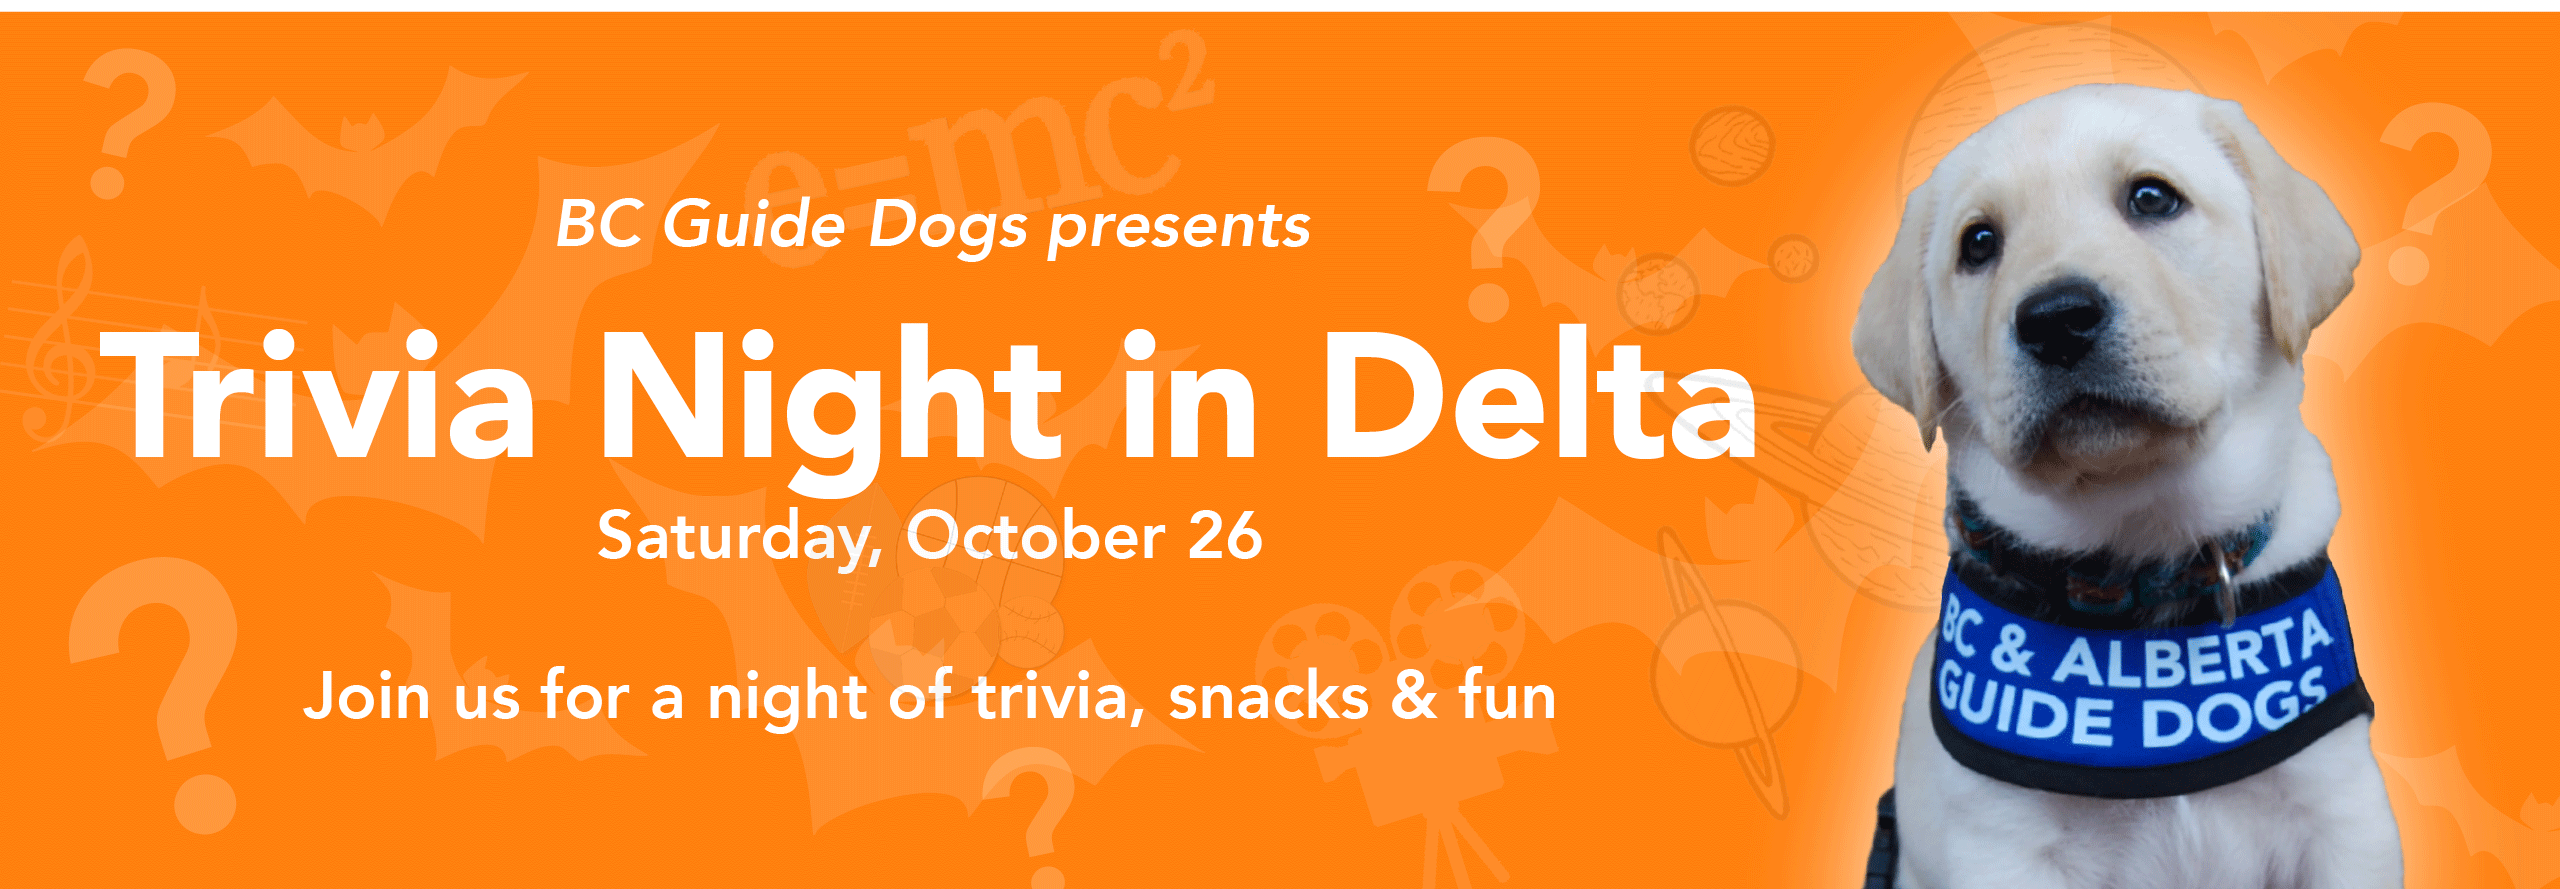 Save the Date! Trivia Night in Delta is on Saturday, October 26